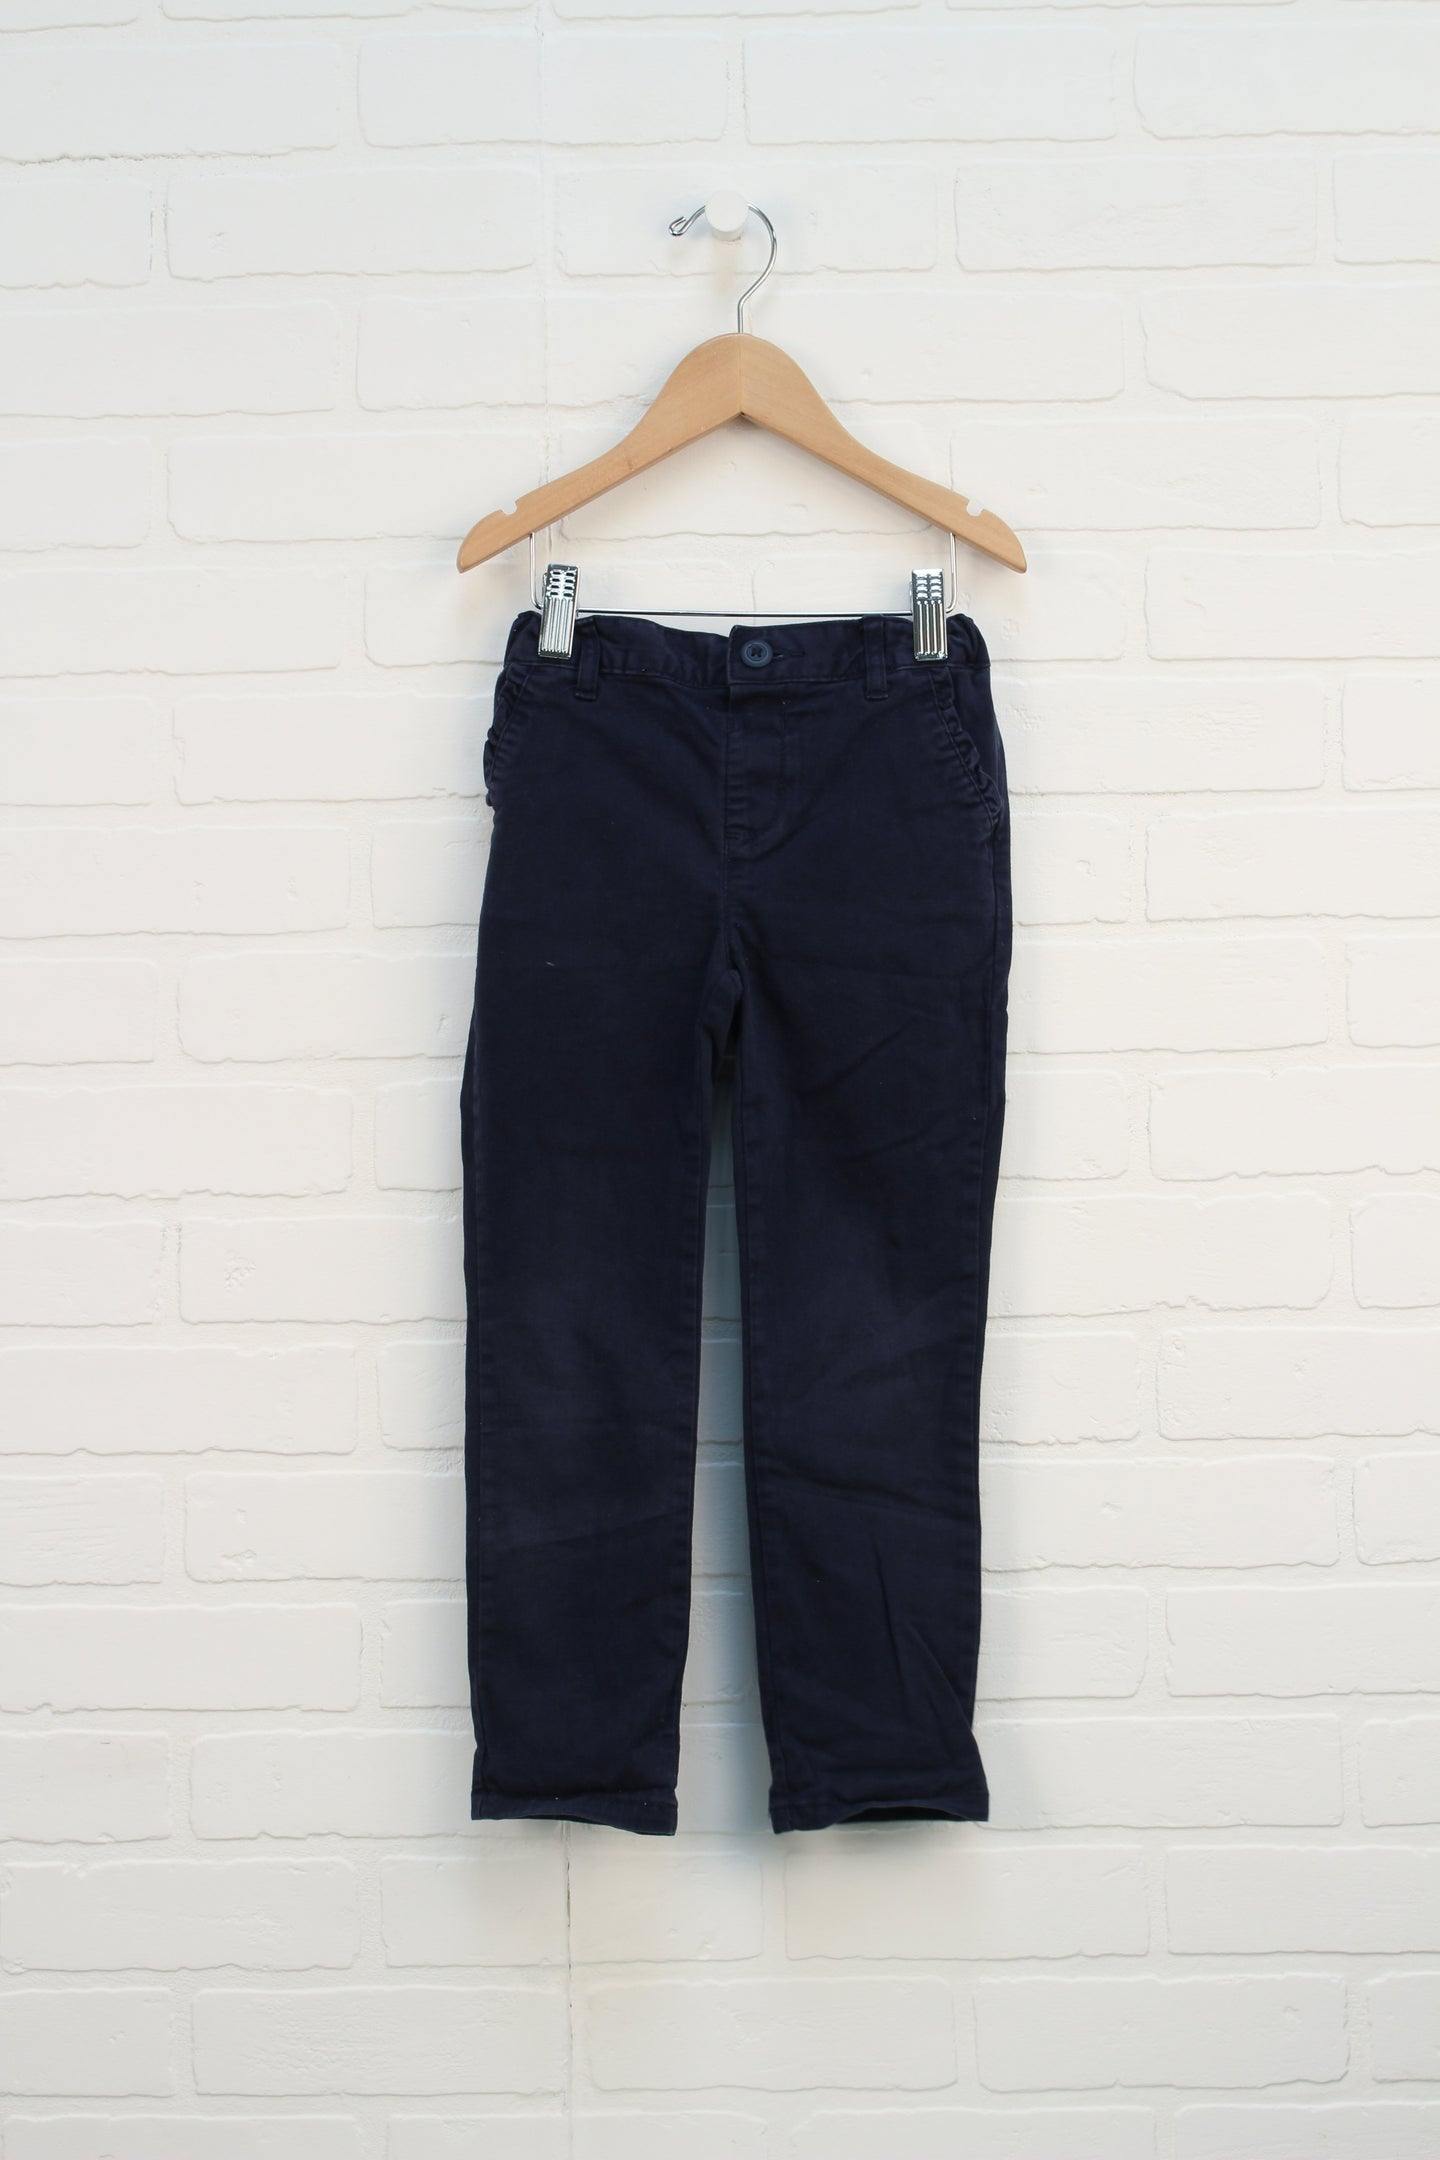 Navy Ruffle Pocket Uniform Pants (Size 5T)